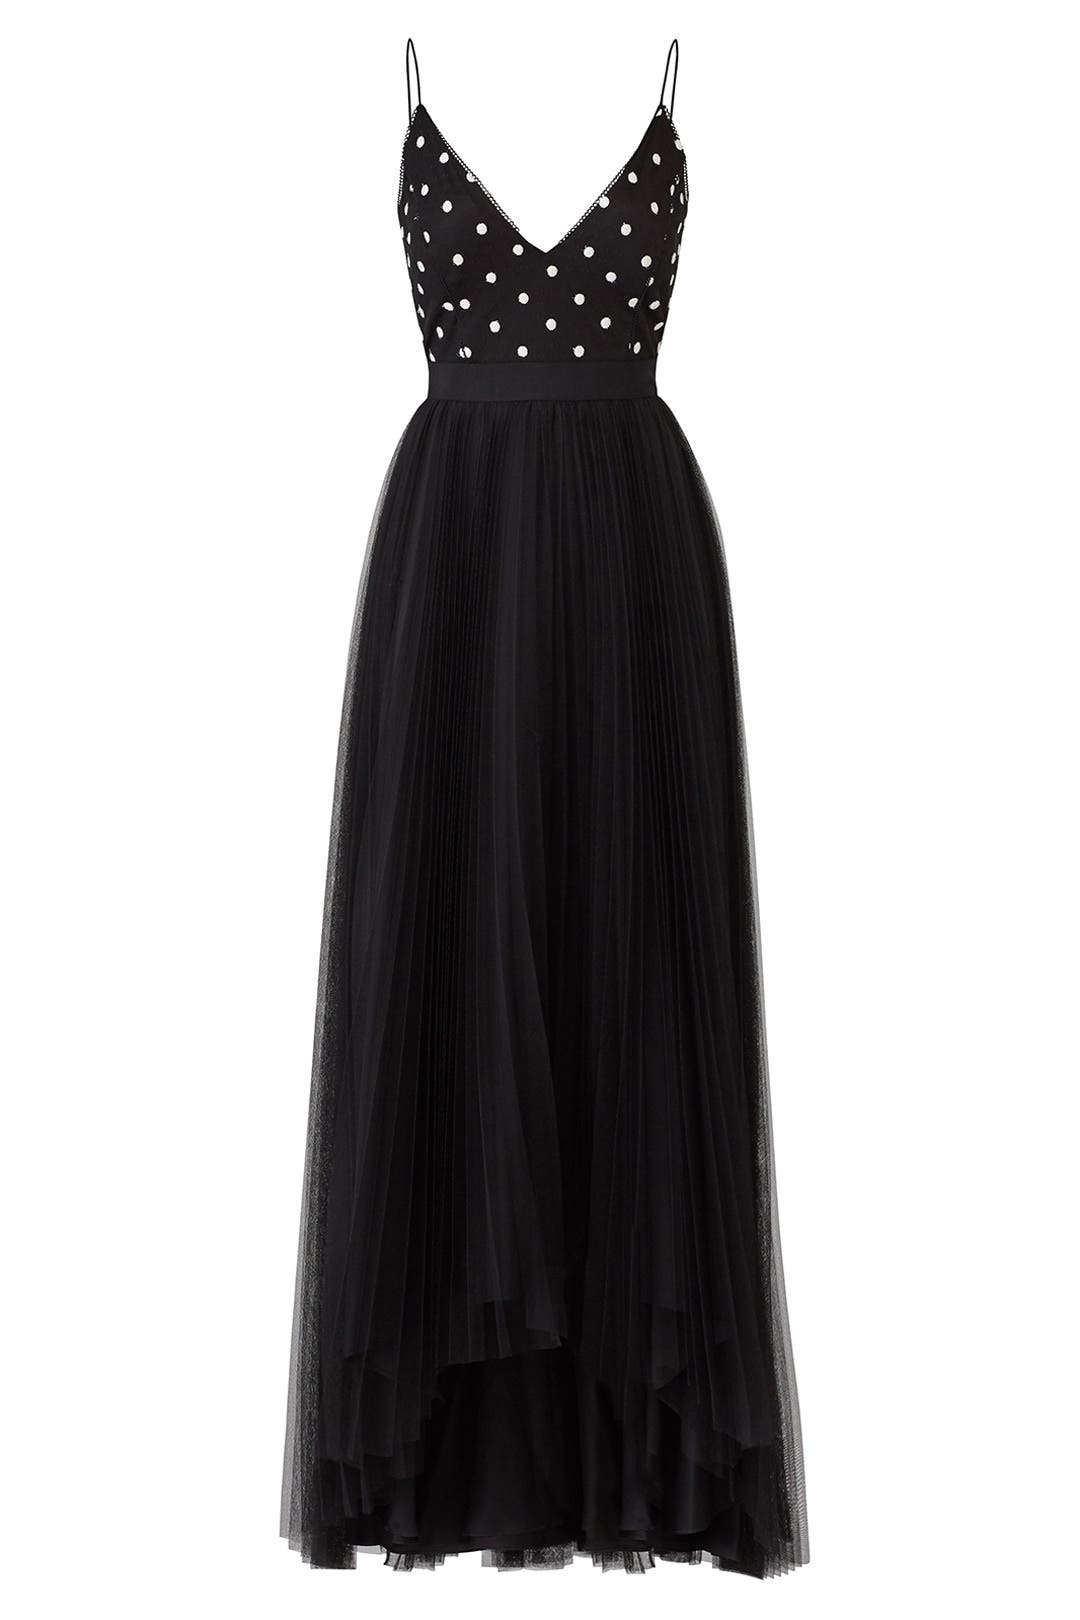 Polka Dot Bodice Gown by Adrianna Papell for $50 - $70 | Rent the Runway